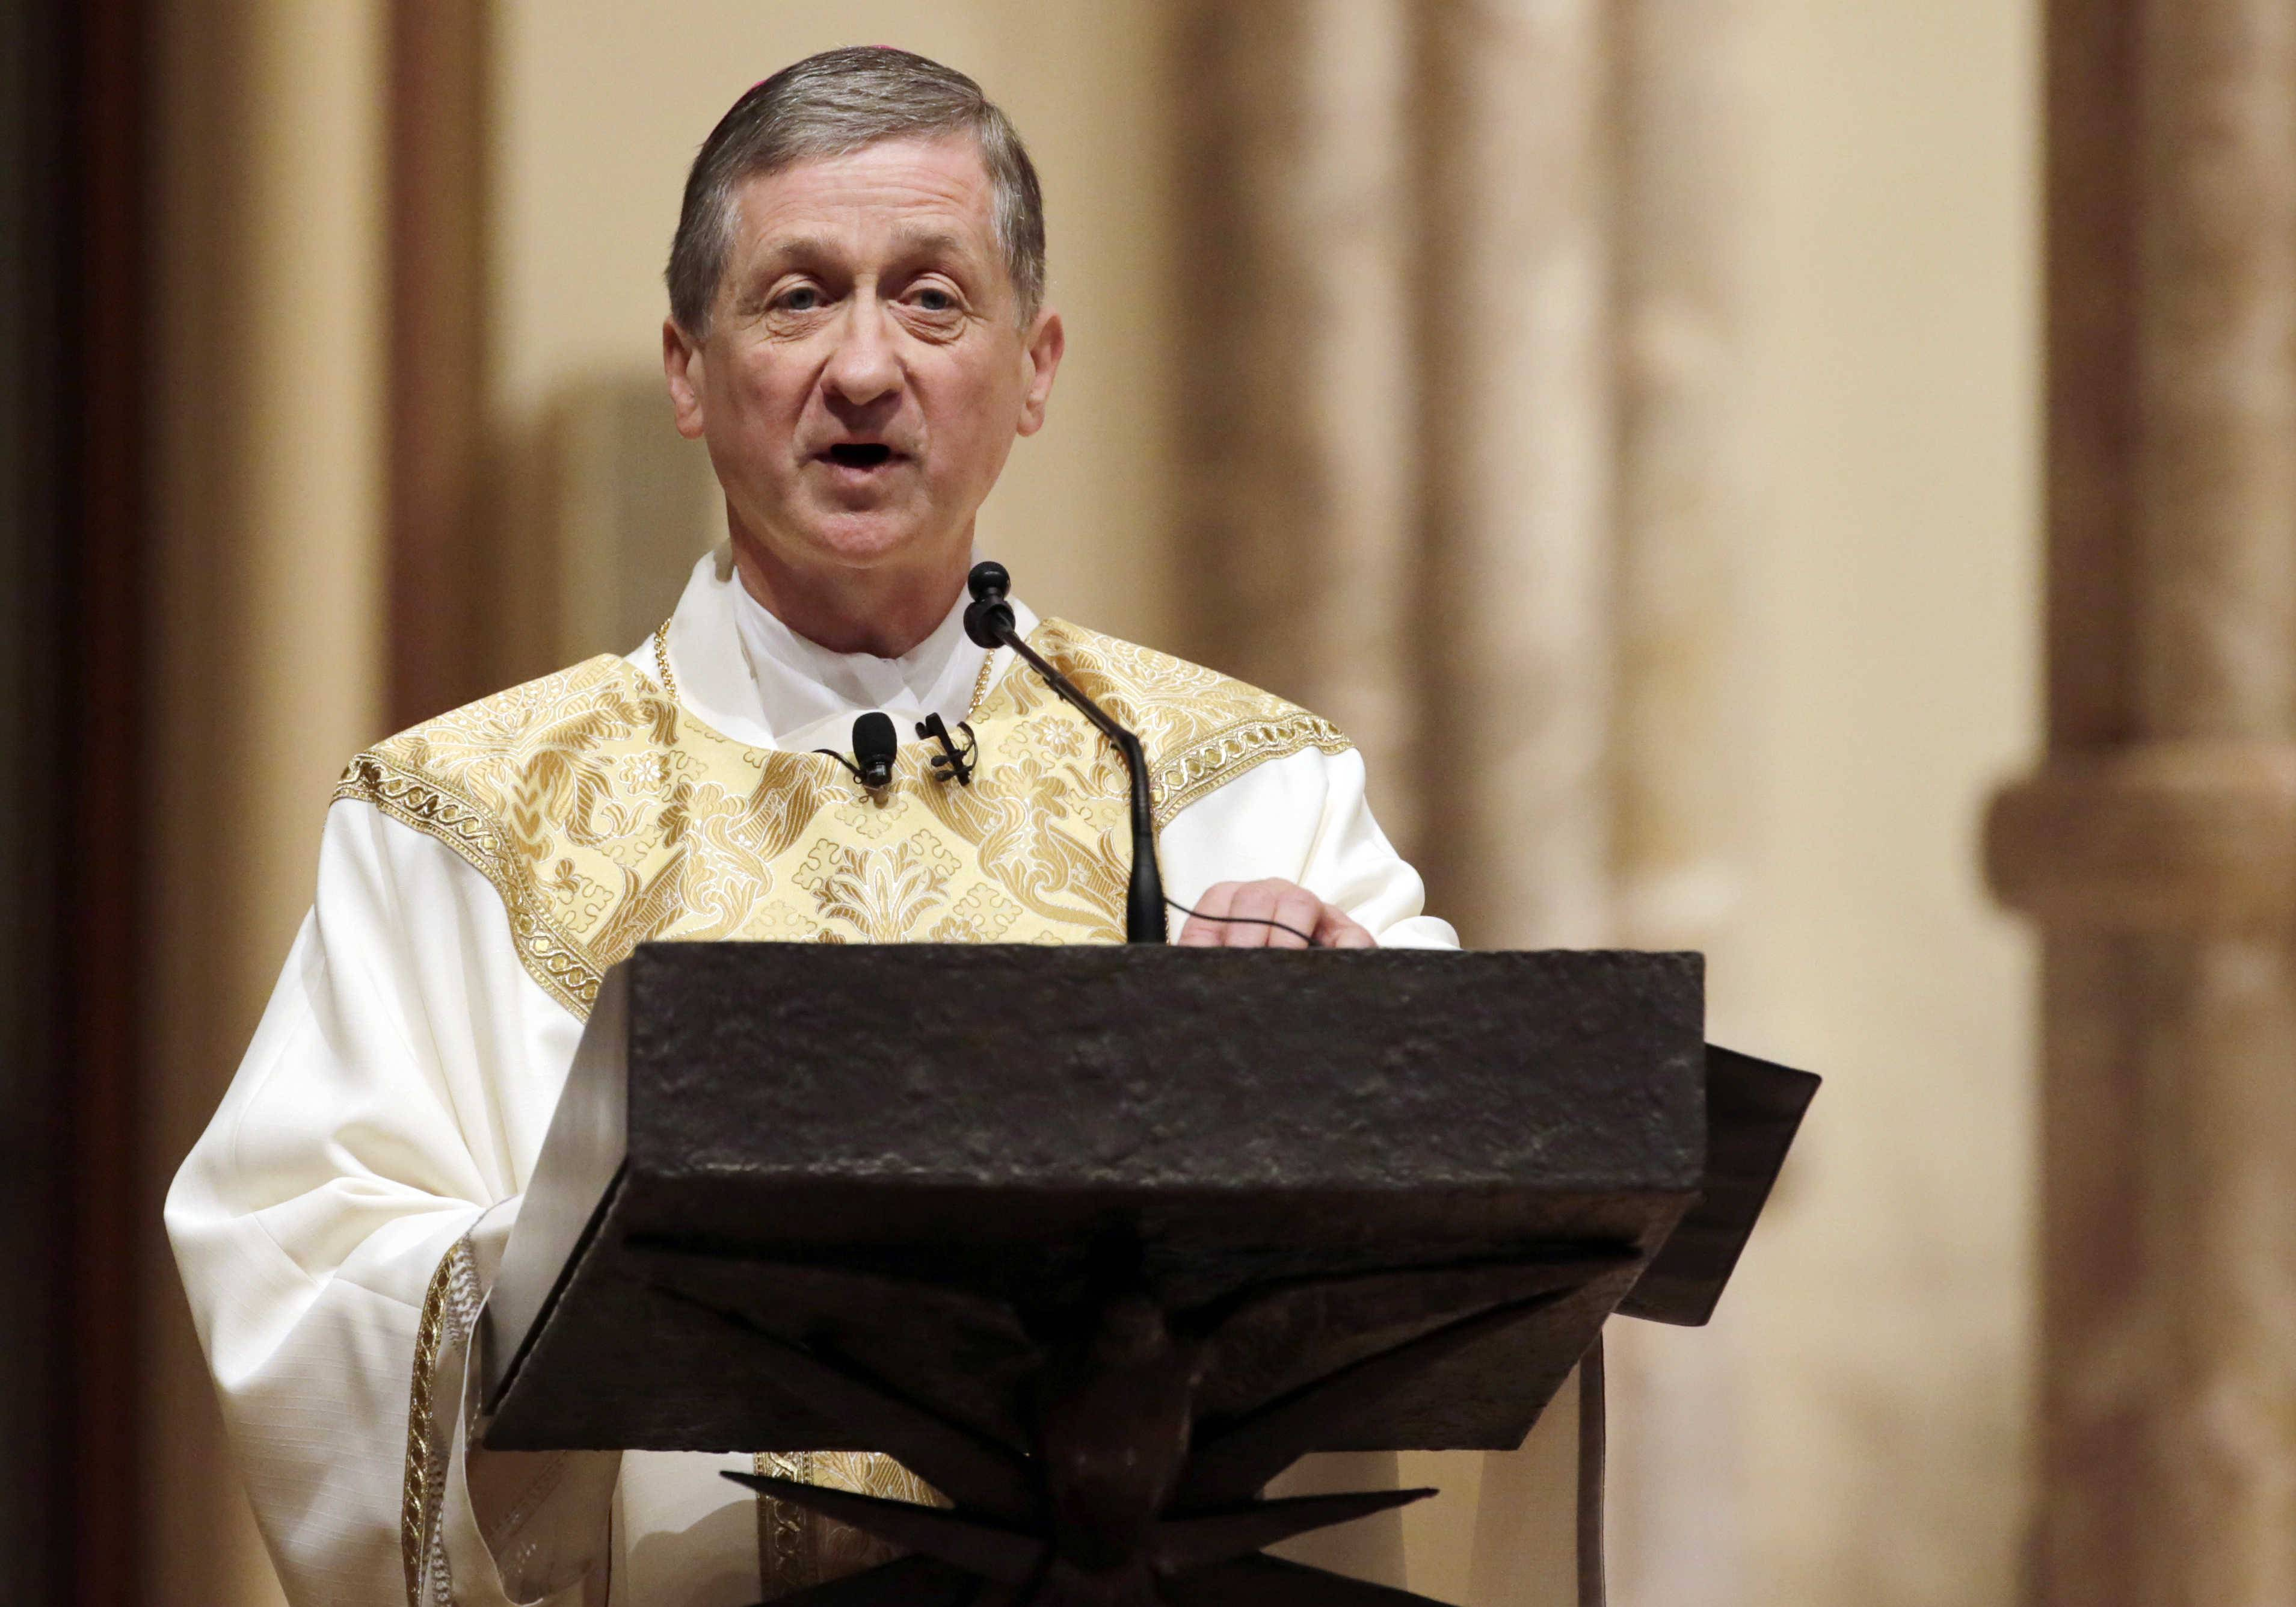 Archbishop Blase Cupich delivers the homily during his Installation Mass at Holy Name Cathedral in November 2014. Cupich has announced a restructuring plan is underway for the nation's third-largest Catholic archdiocese, which is expected to include parish closures and consolidations.